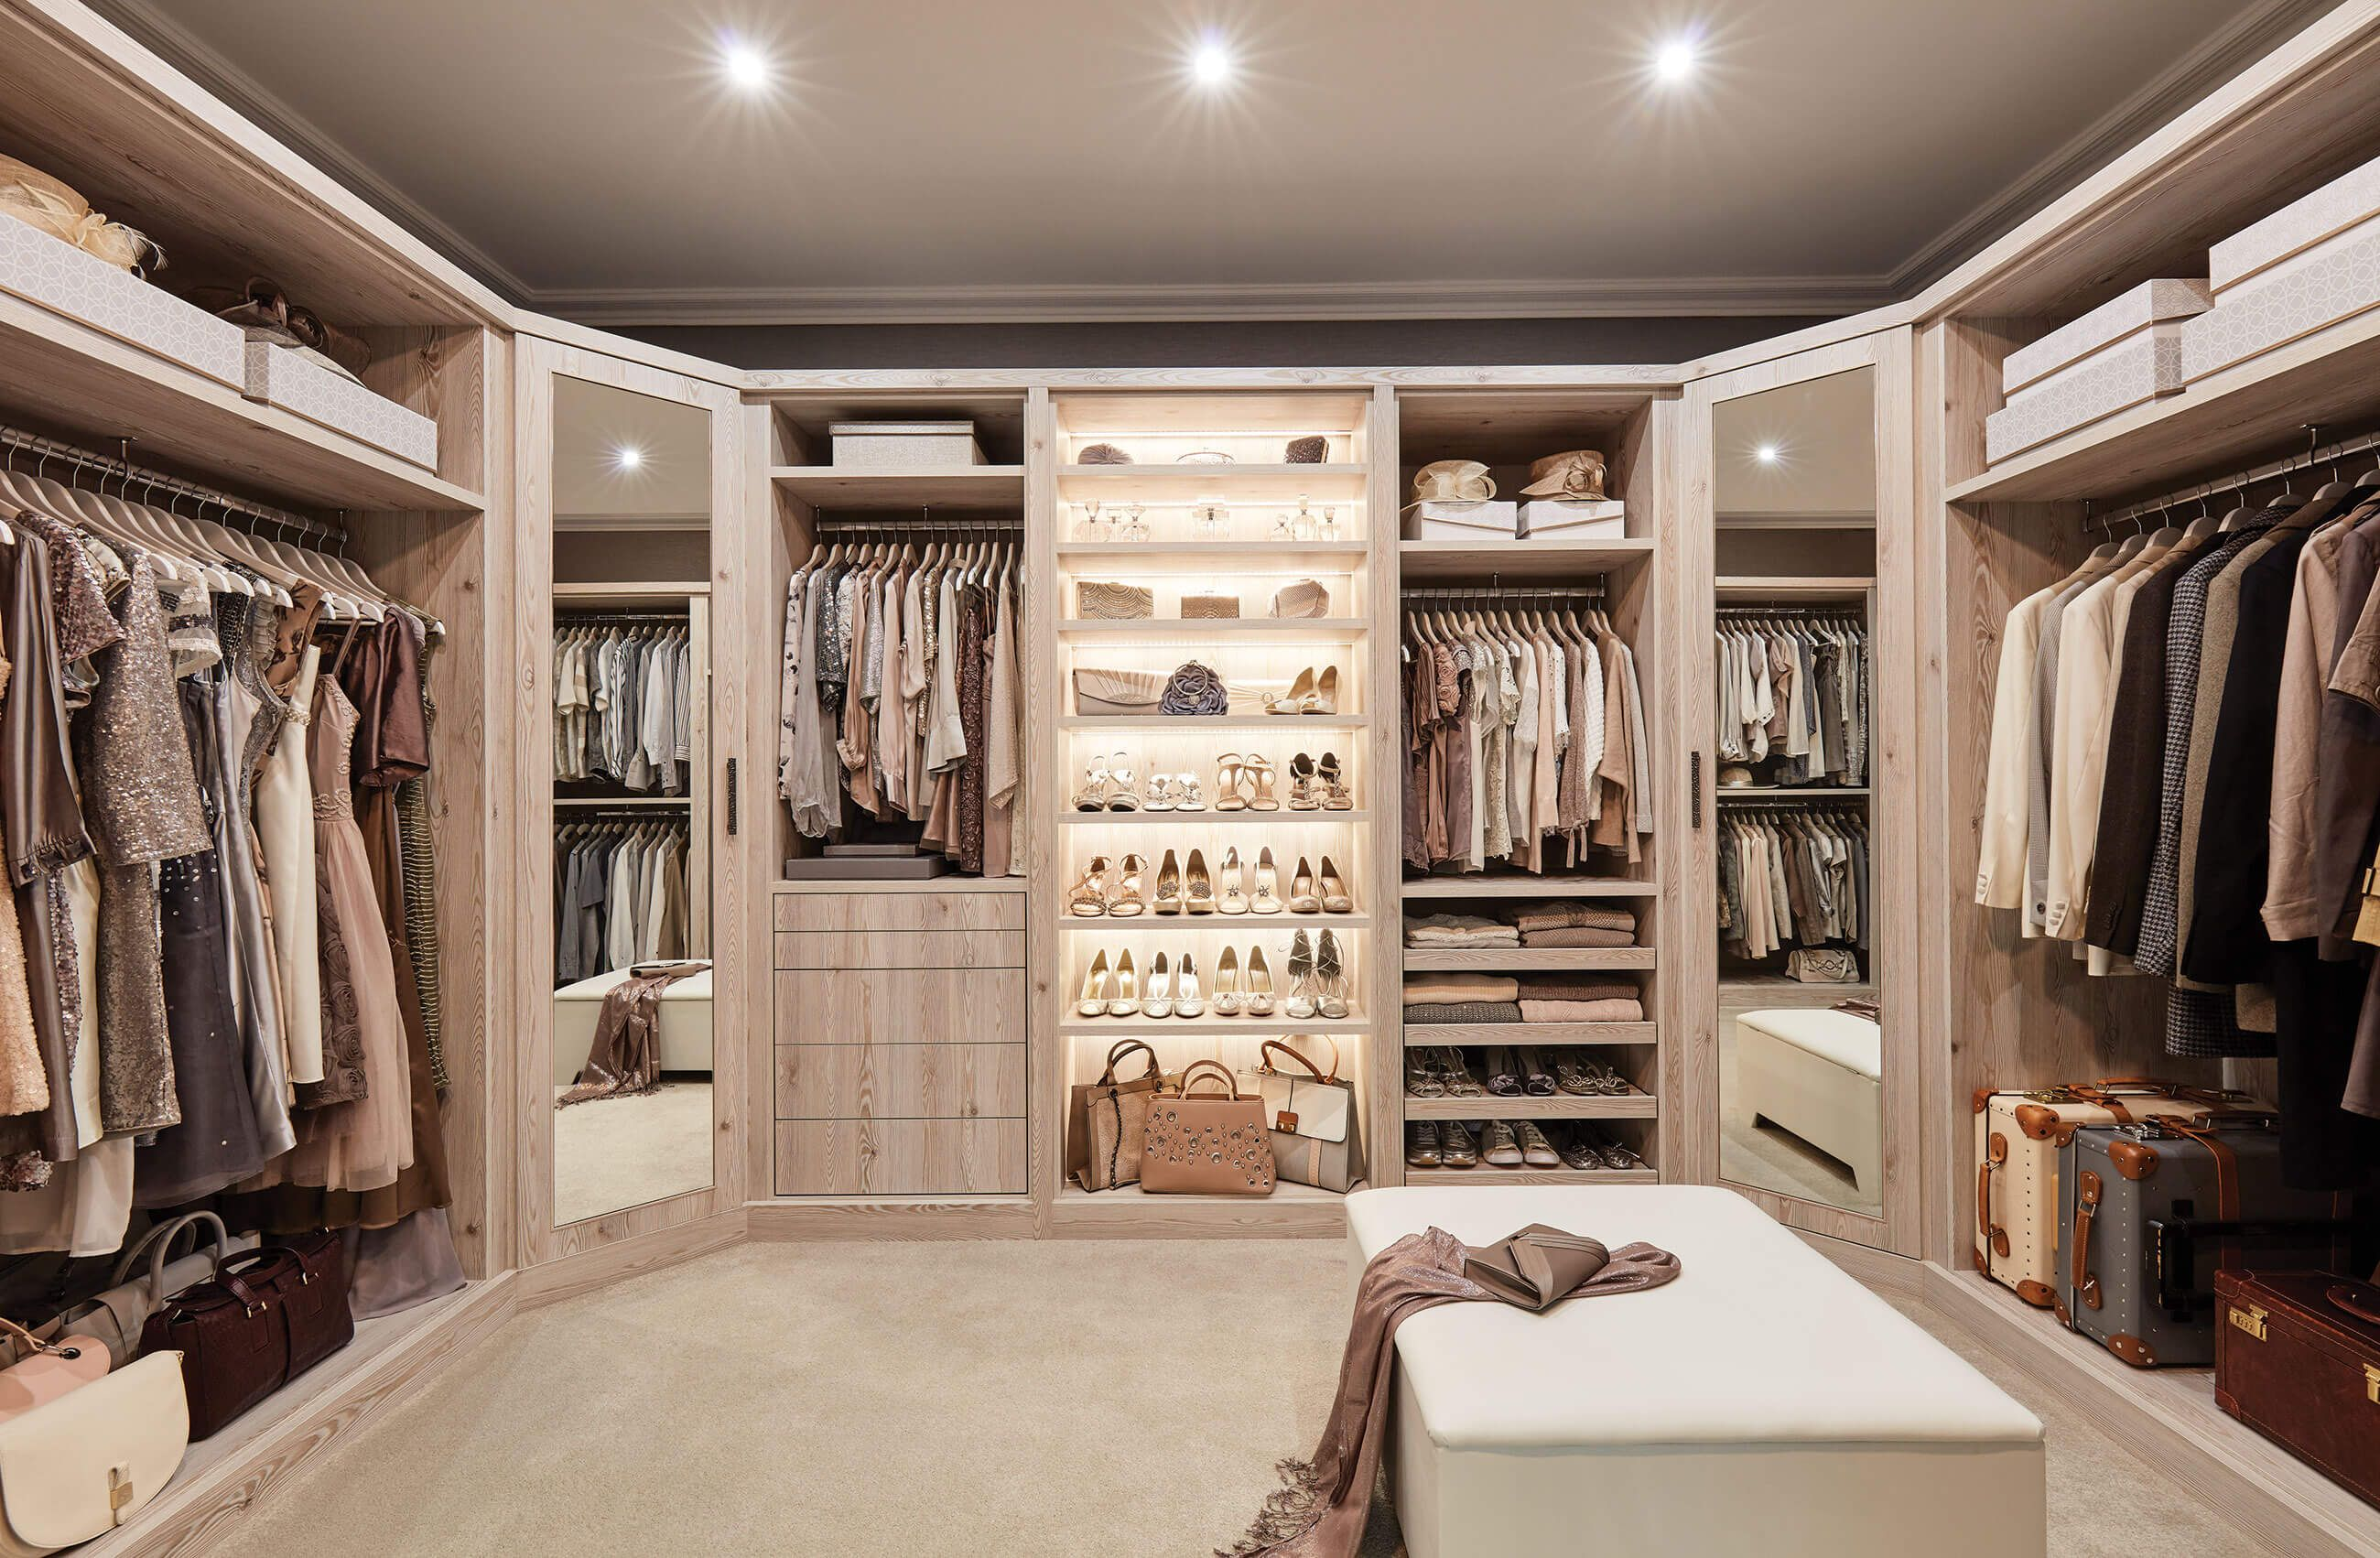 Boutique Dressing Room Ideas | Fitting Room Ideas ...